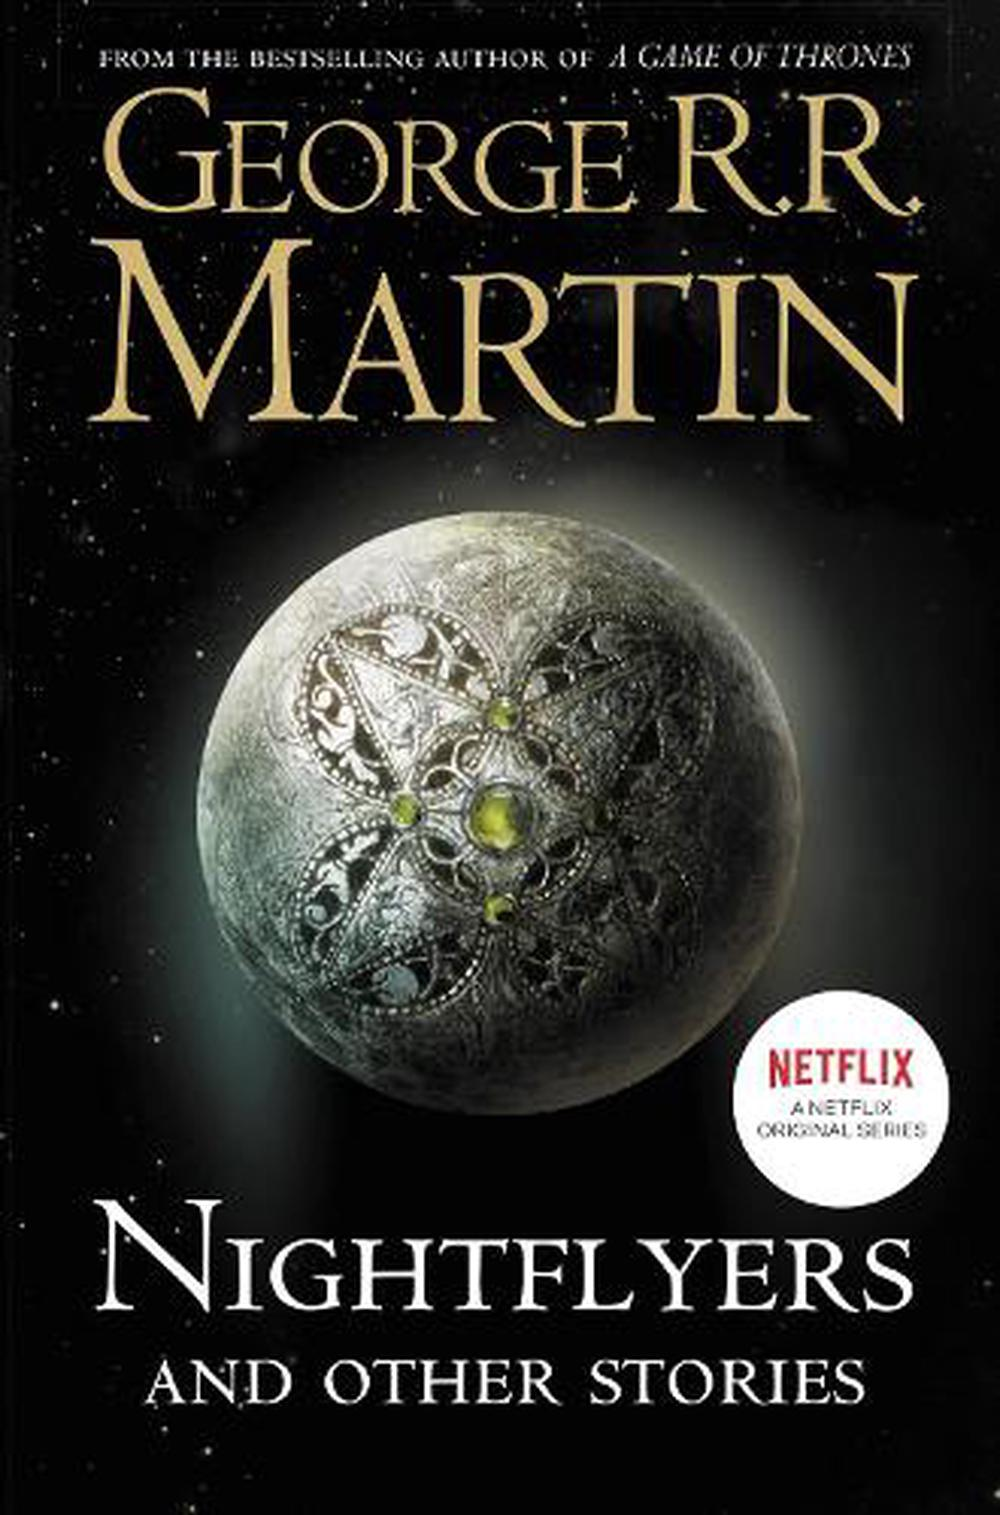 Nightflyers And Other Stories By George Rr Martin Paperback Knight Of The Seven 9780008300760 Buy Online At Nile